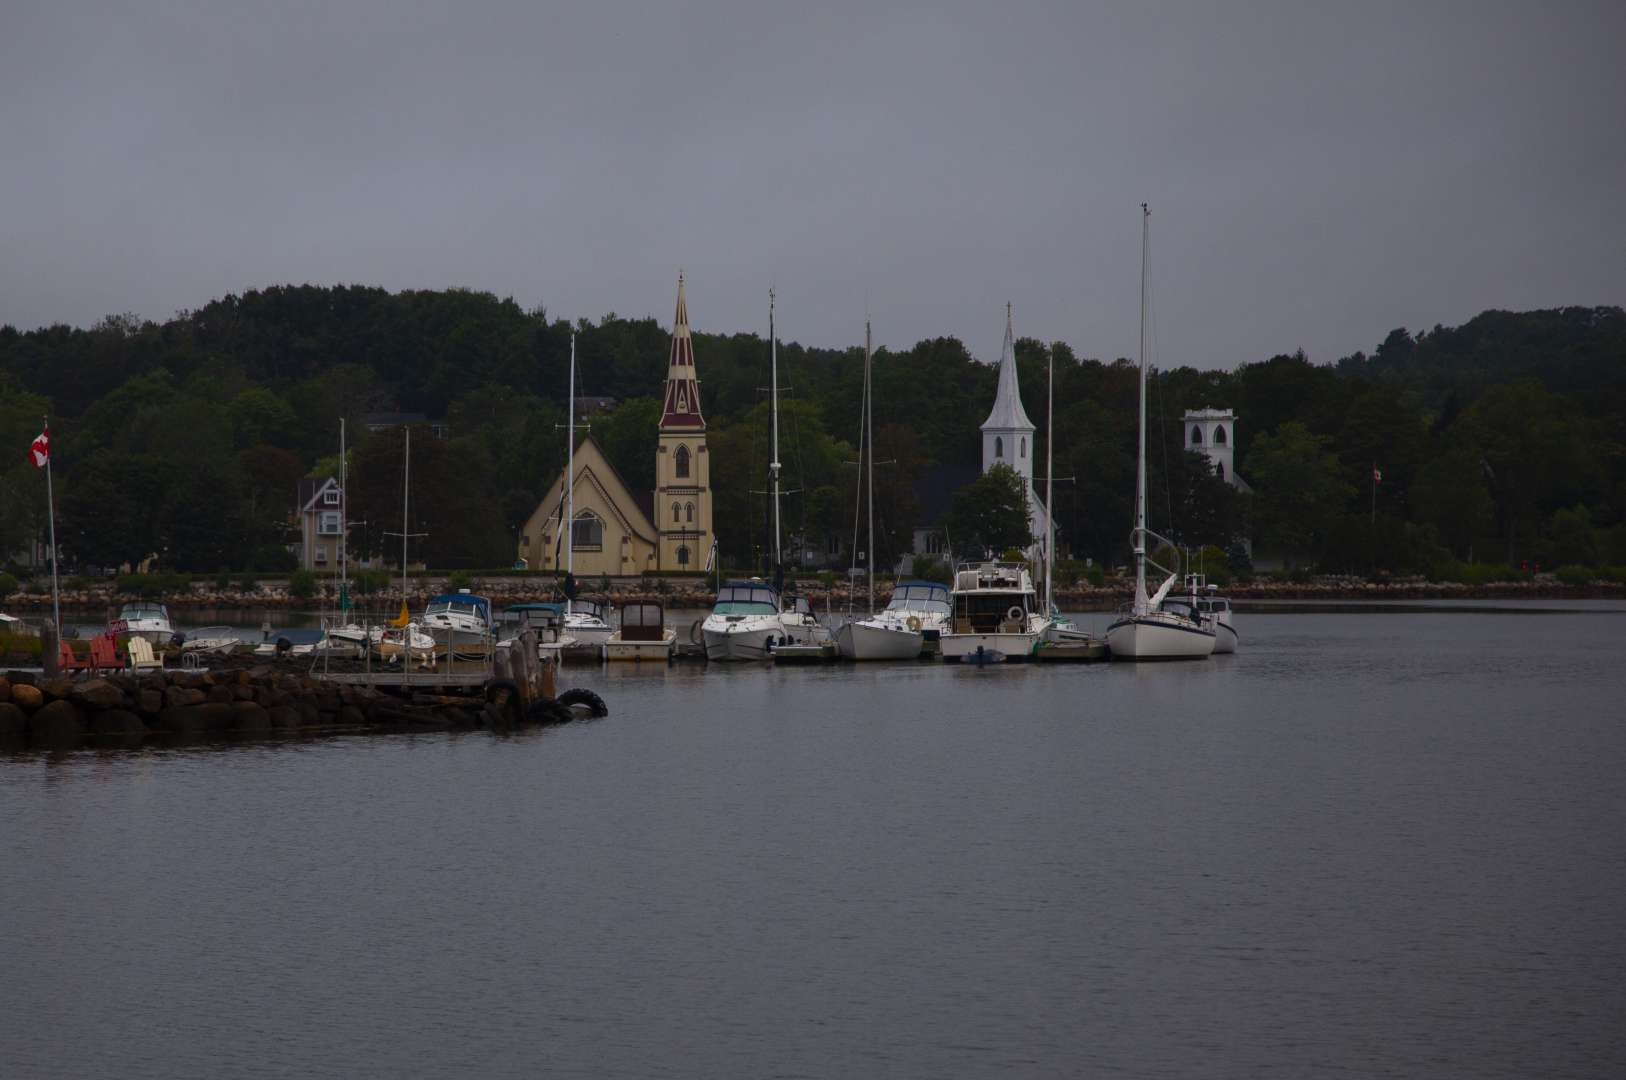 The Steeples of the Mahone Bay churches can be seen between Canadian Falgs on the waterfron in Mahone Bay, Nova Scotia